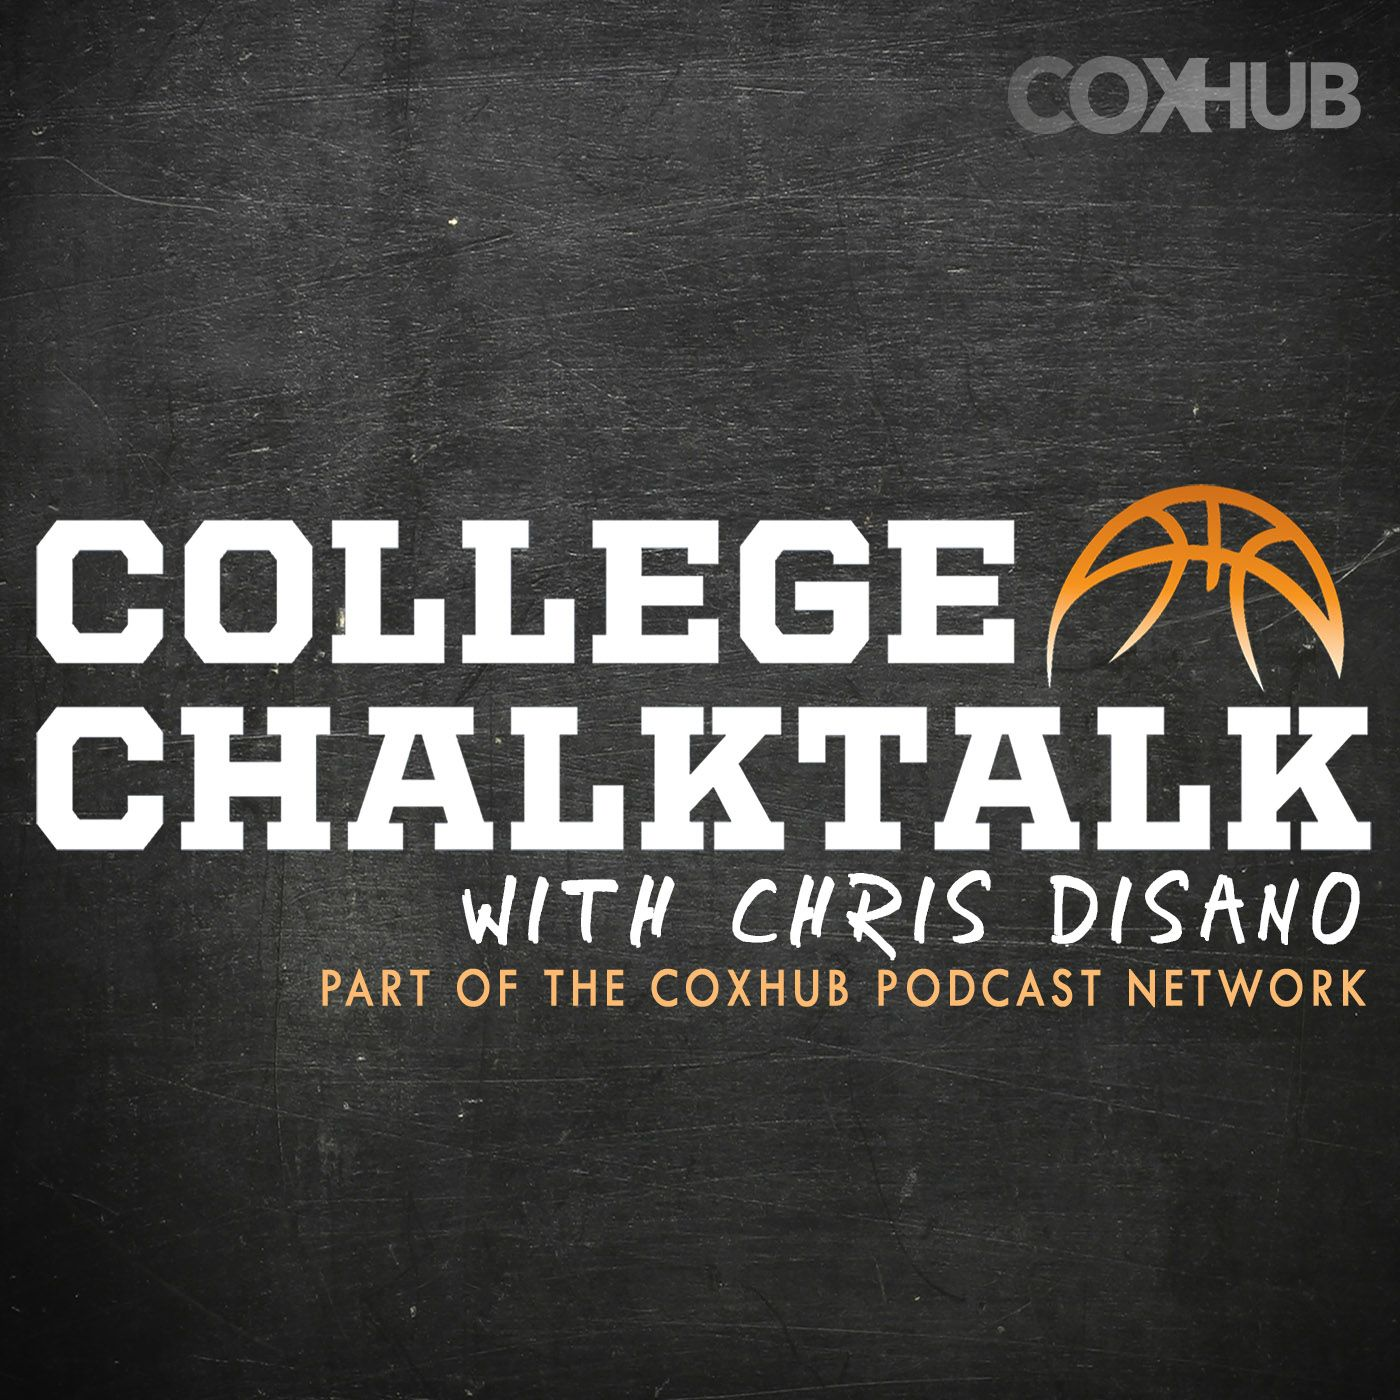 College Chalktalk on CoxHub